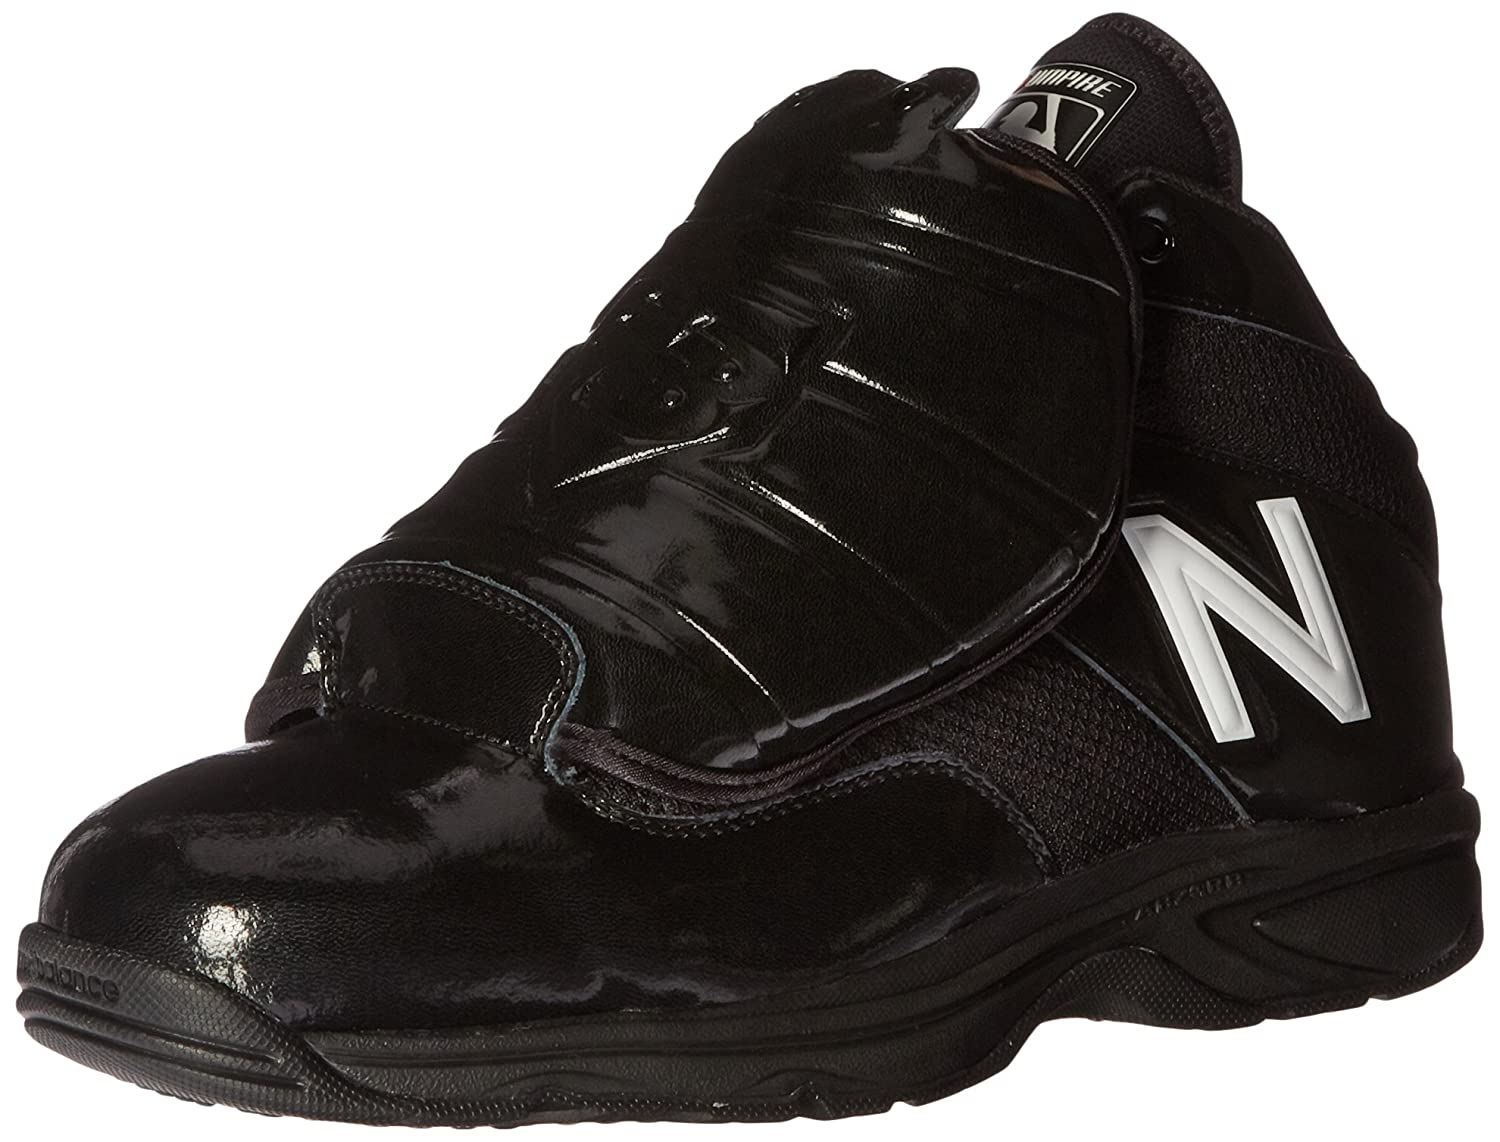 New Balance Men's mu460v3 Baseball Shoe B01CQTFFZM 12.5 2E US|Black/White